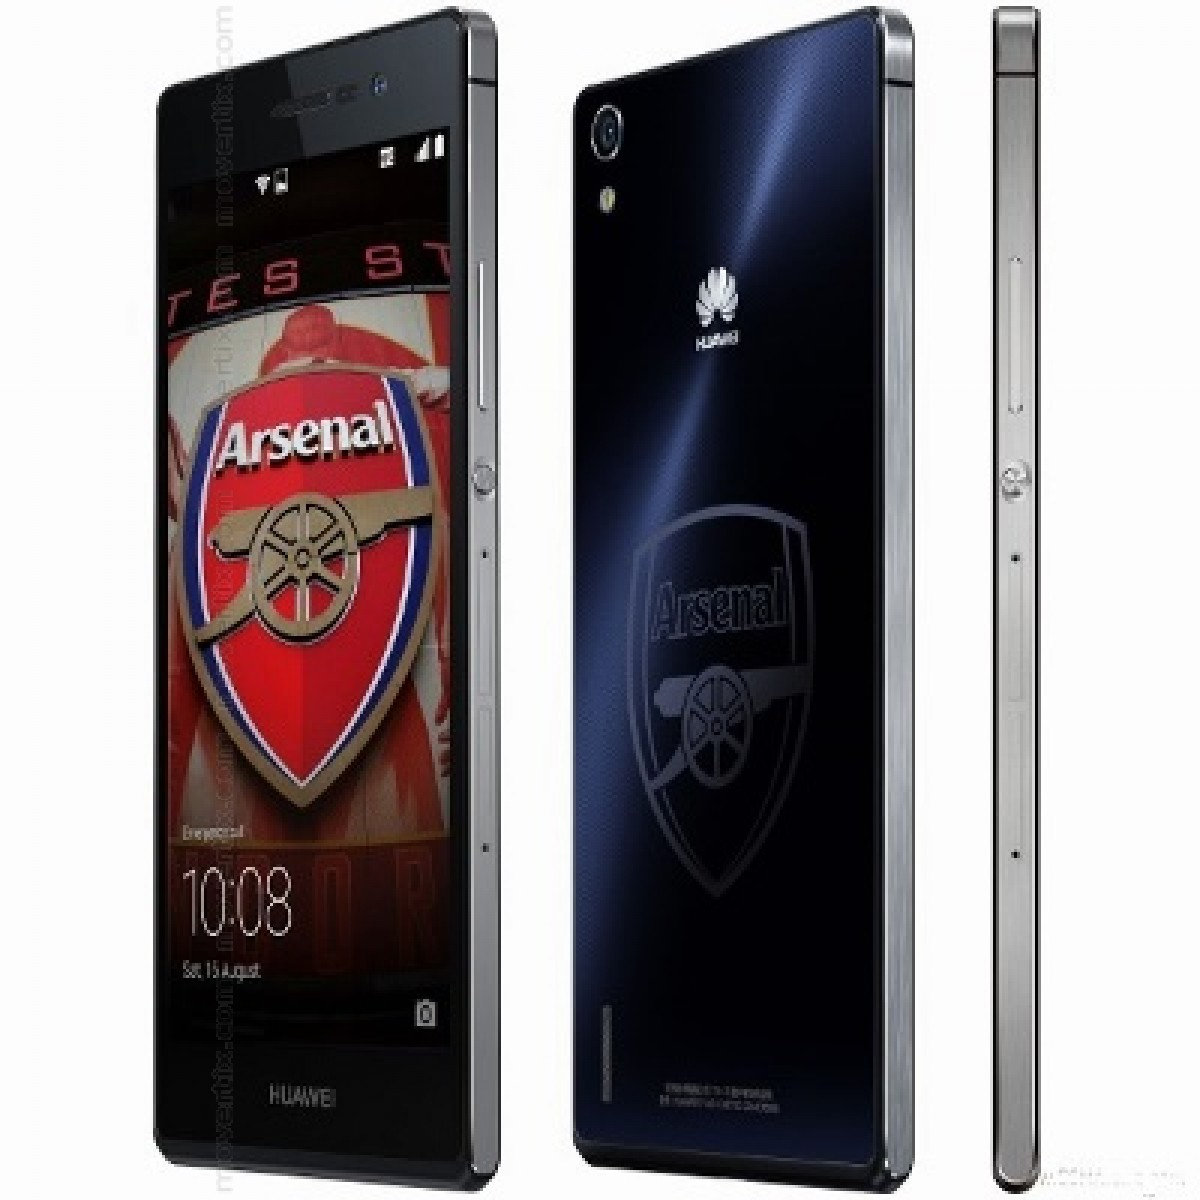 Huawei Ascend P7 Arsenal Edition (6901443025343